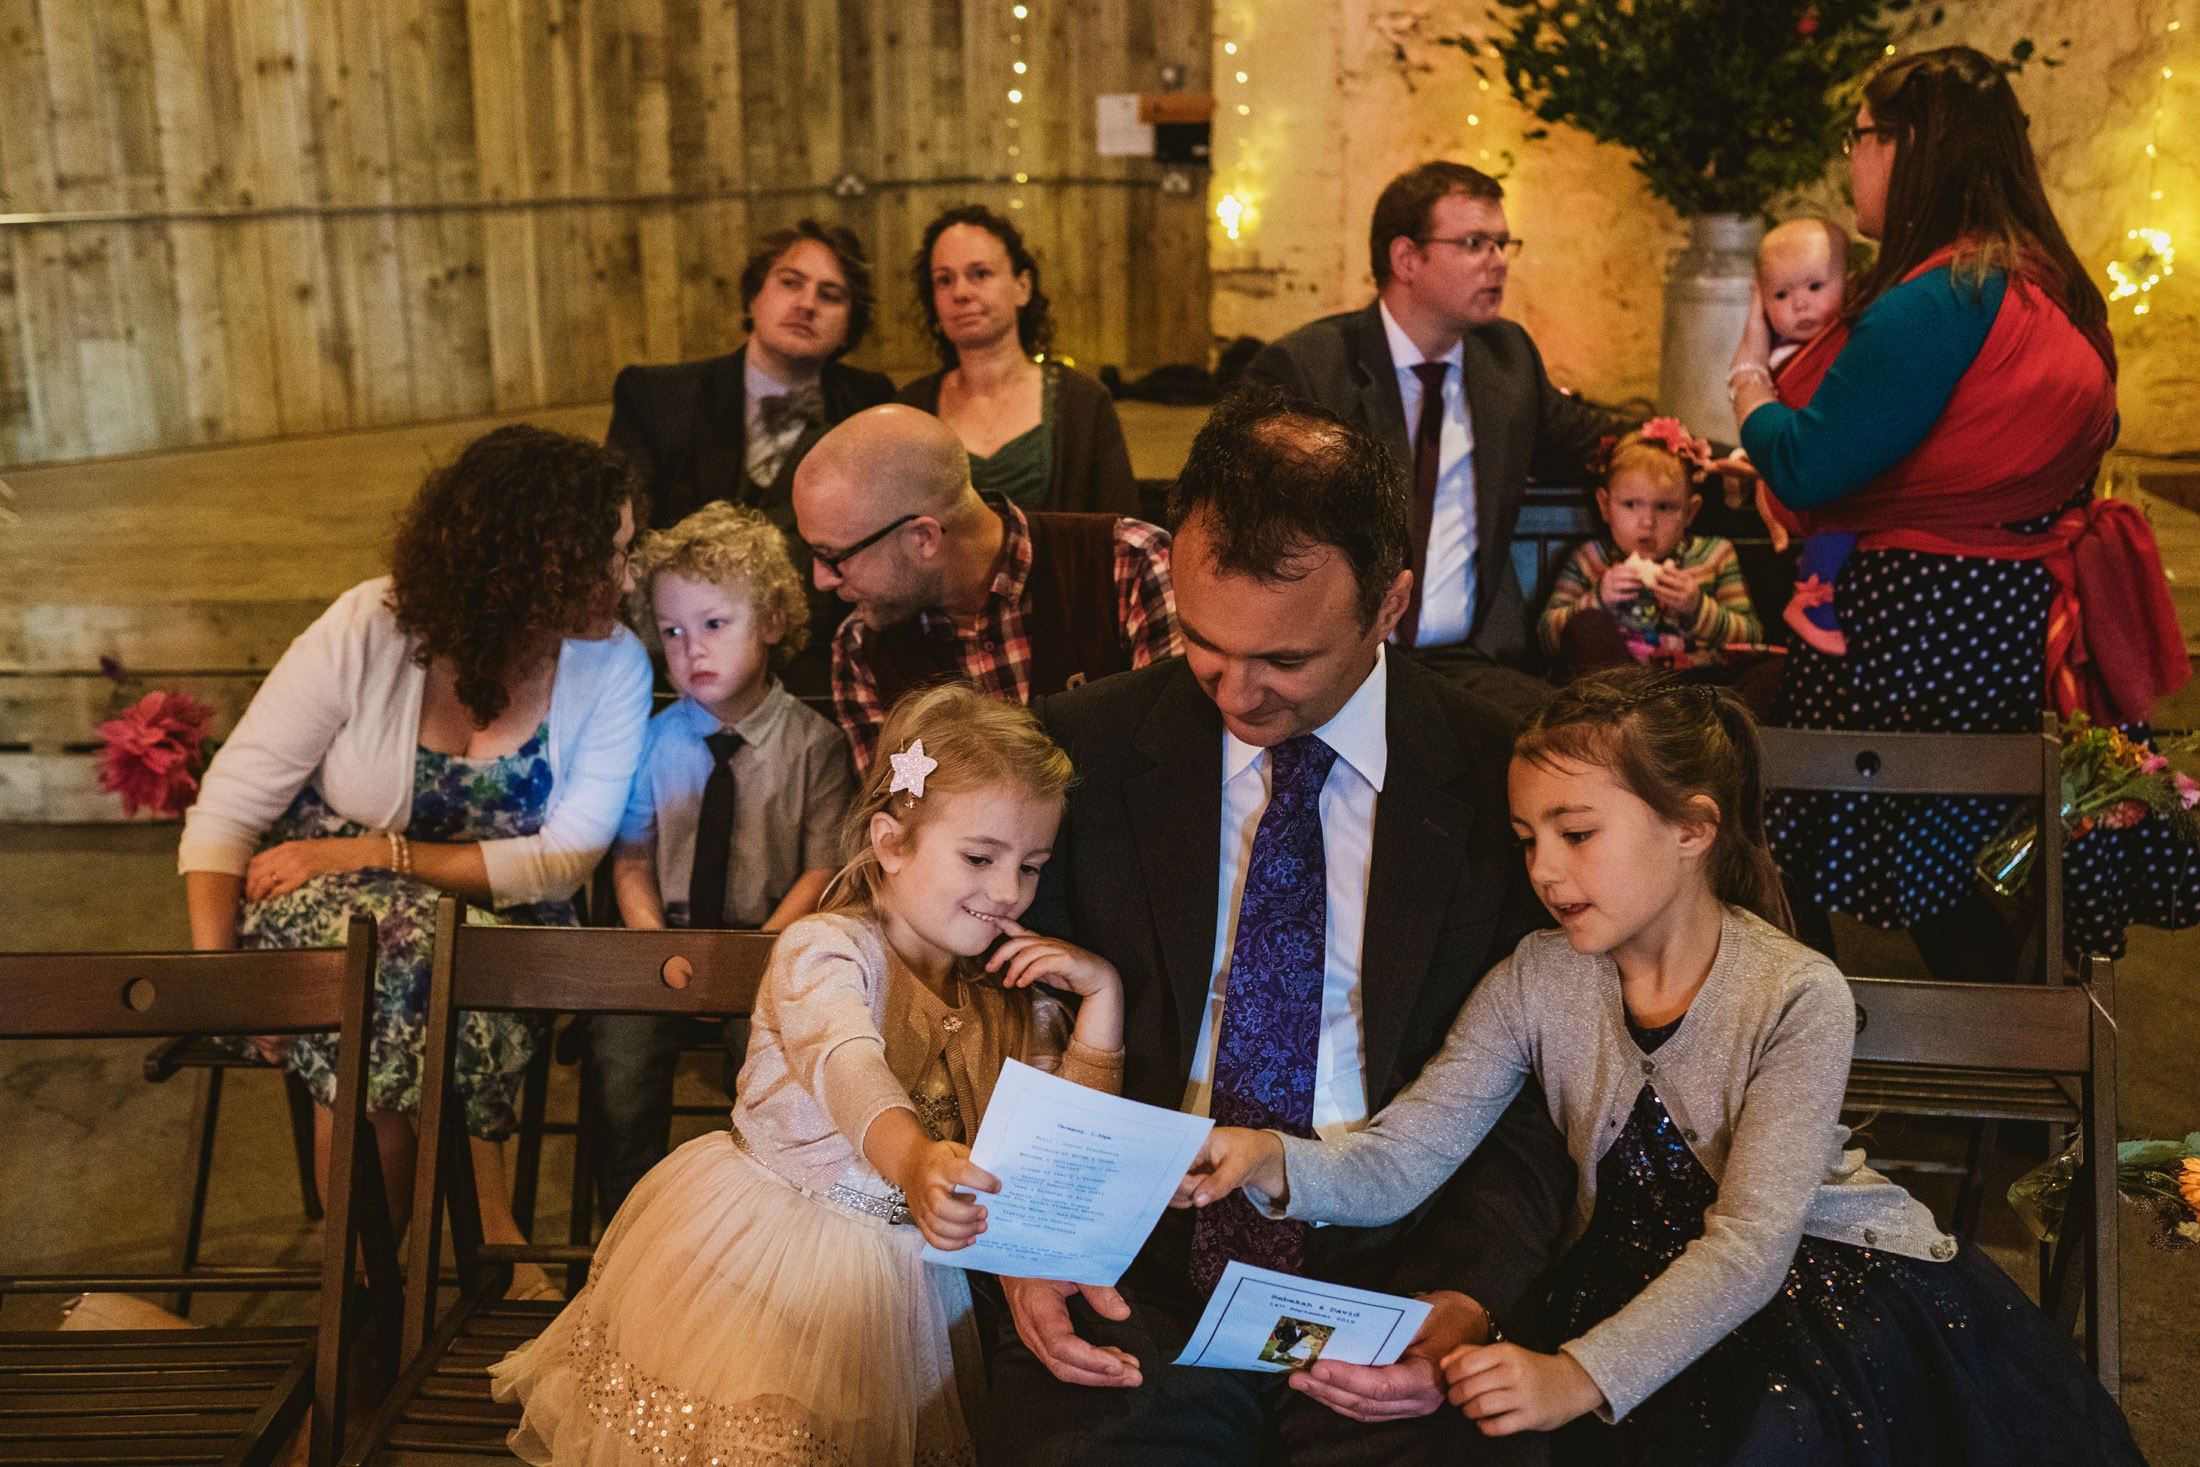 wedding guests looking at order of service before the ceremony at Comrie Croft